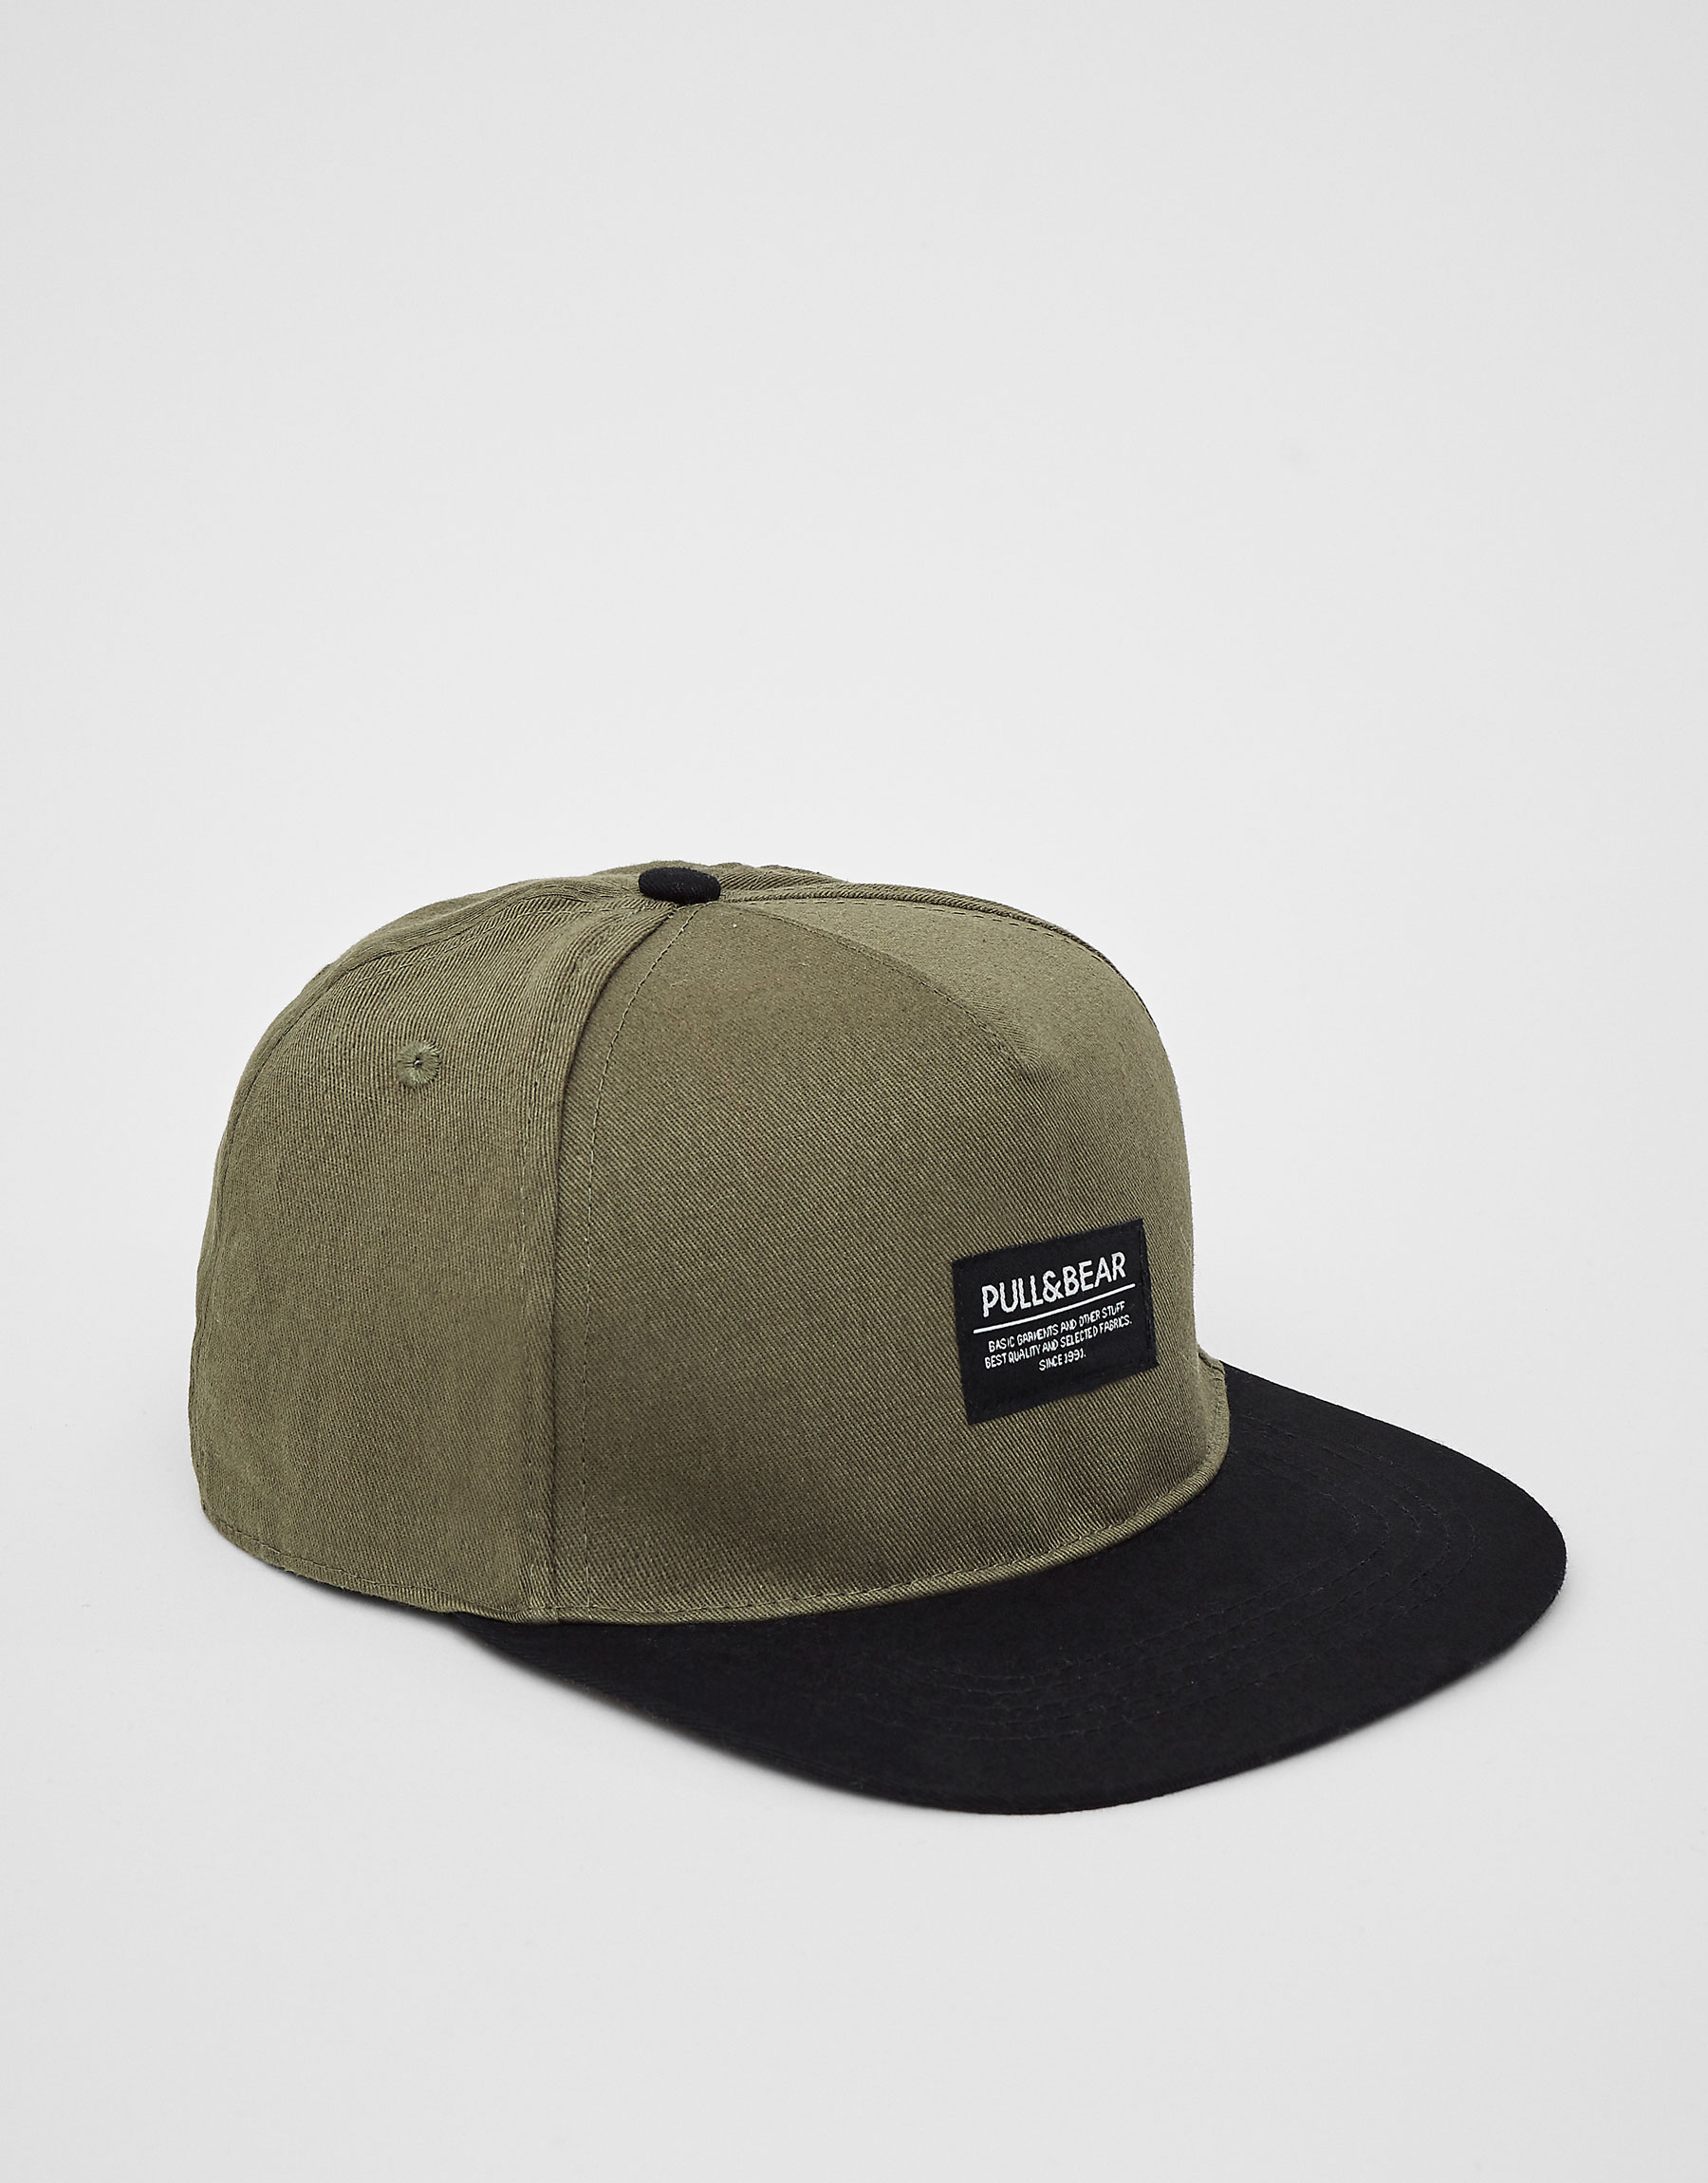 Khaki cap with black visor